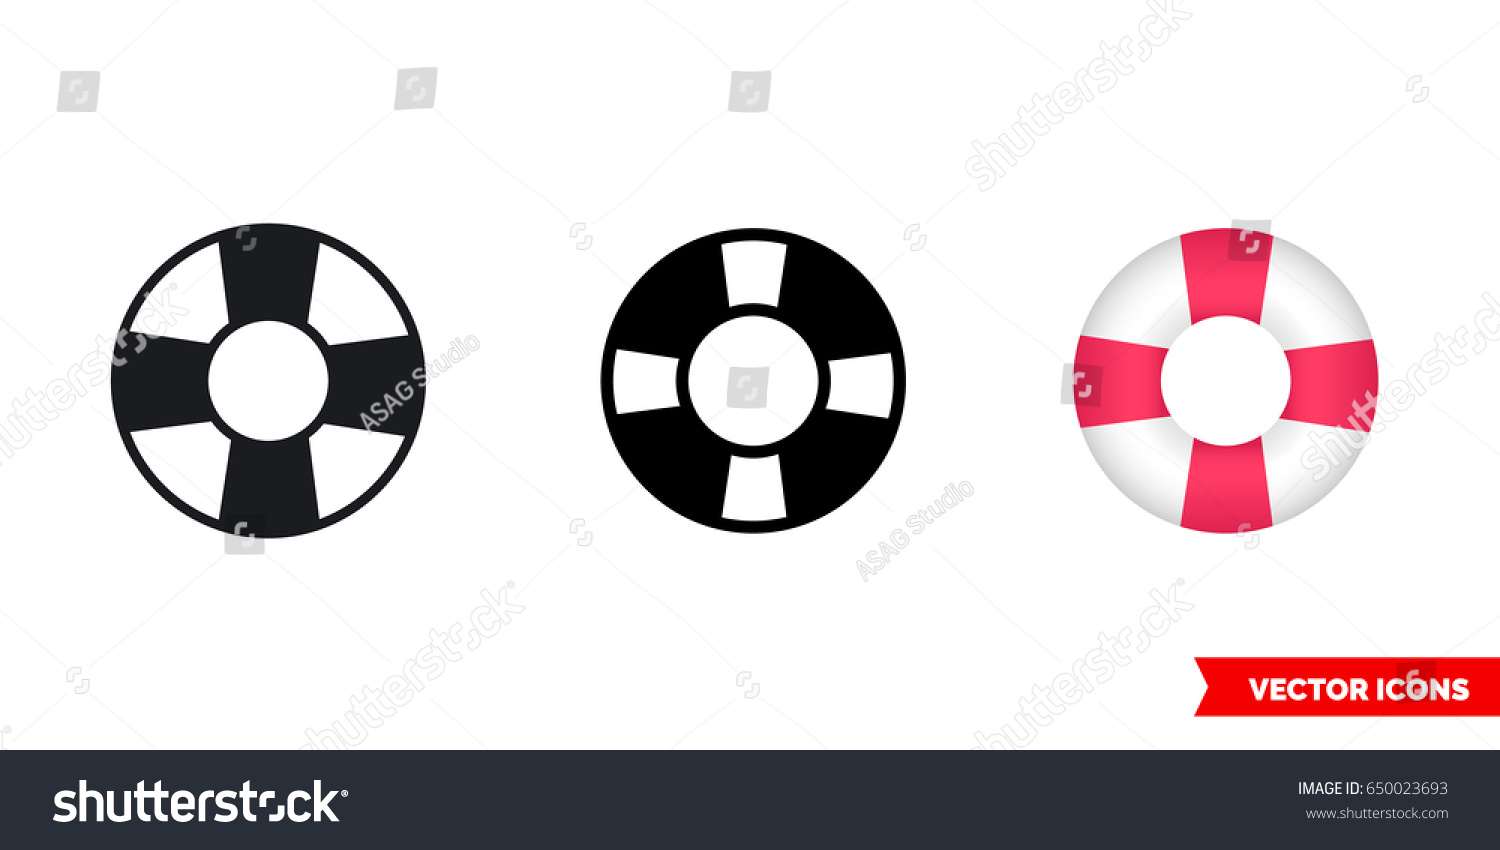 Lifebuoy Icon 3 Types Color Black Stock Vector 650023693 Shutterstock